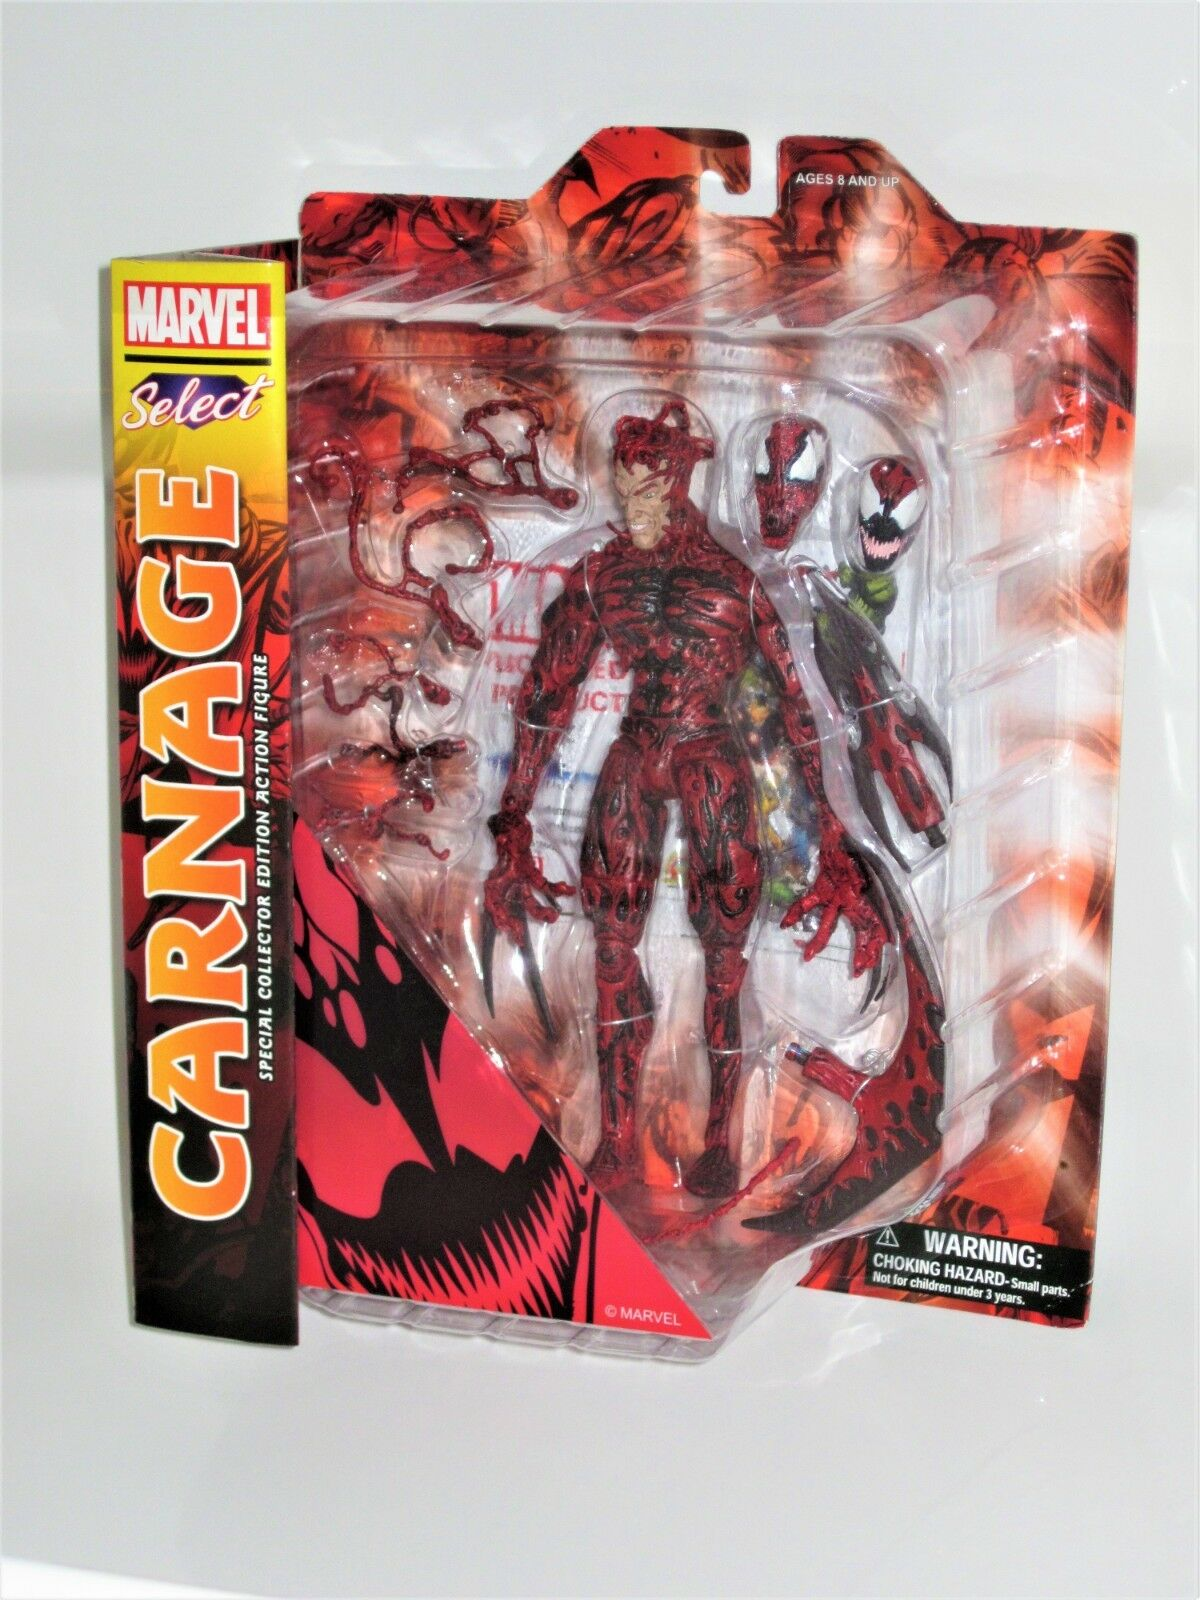 Marvel Select Carnage (Diamond Select) Brand New Sealed Hard To Find Not Legends